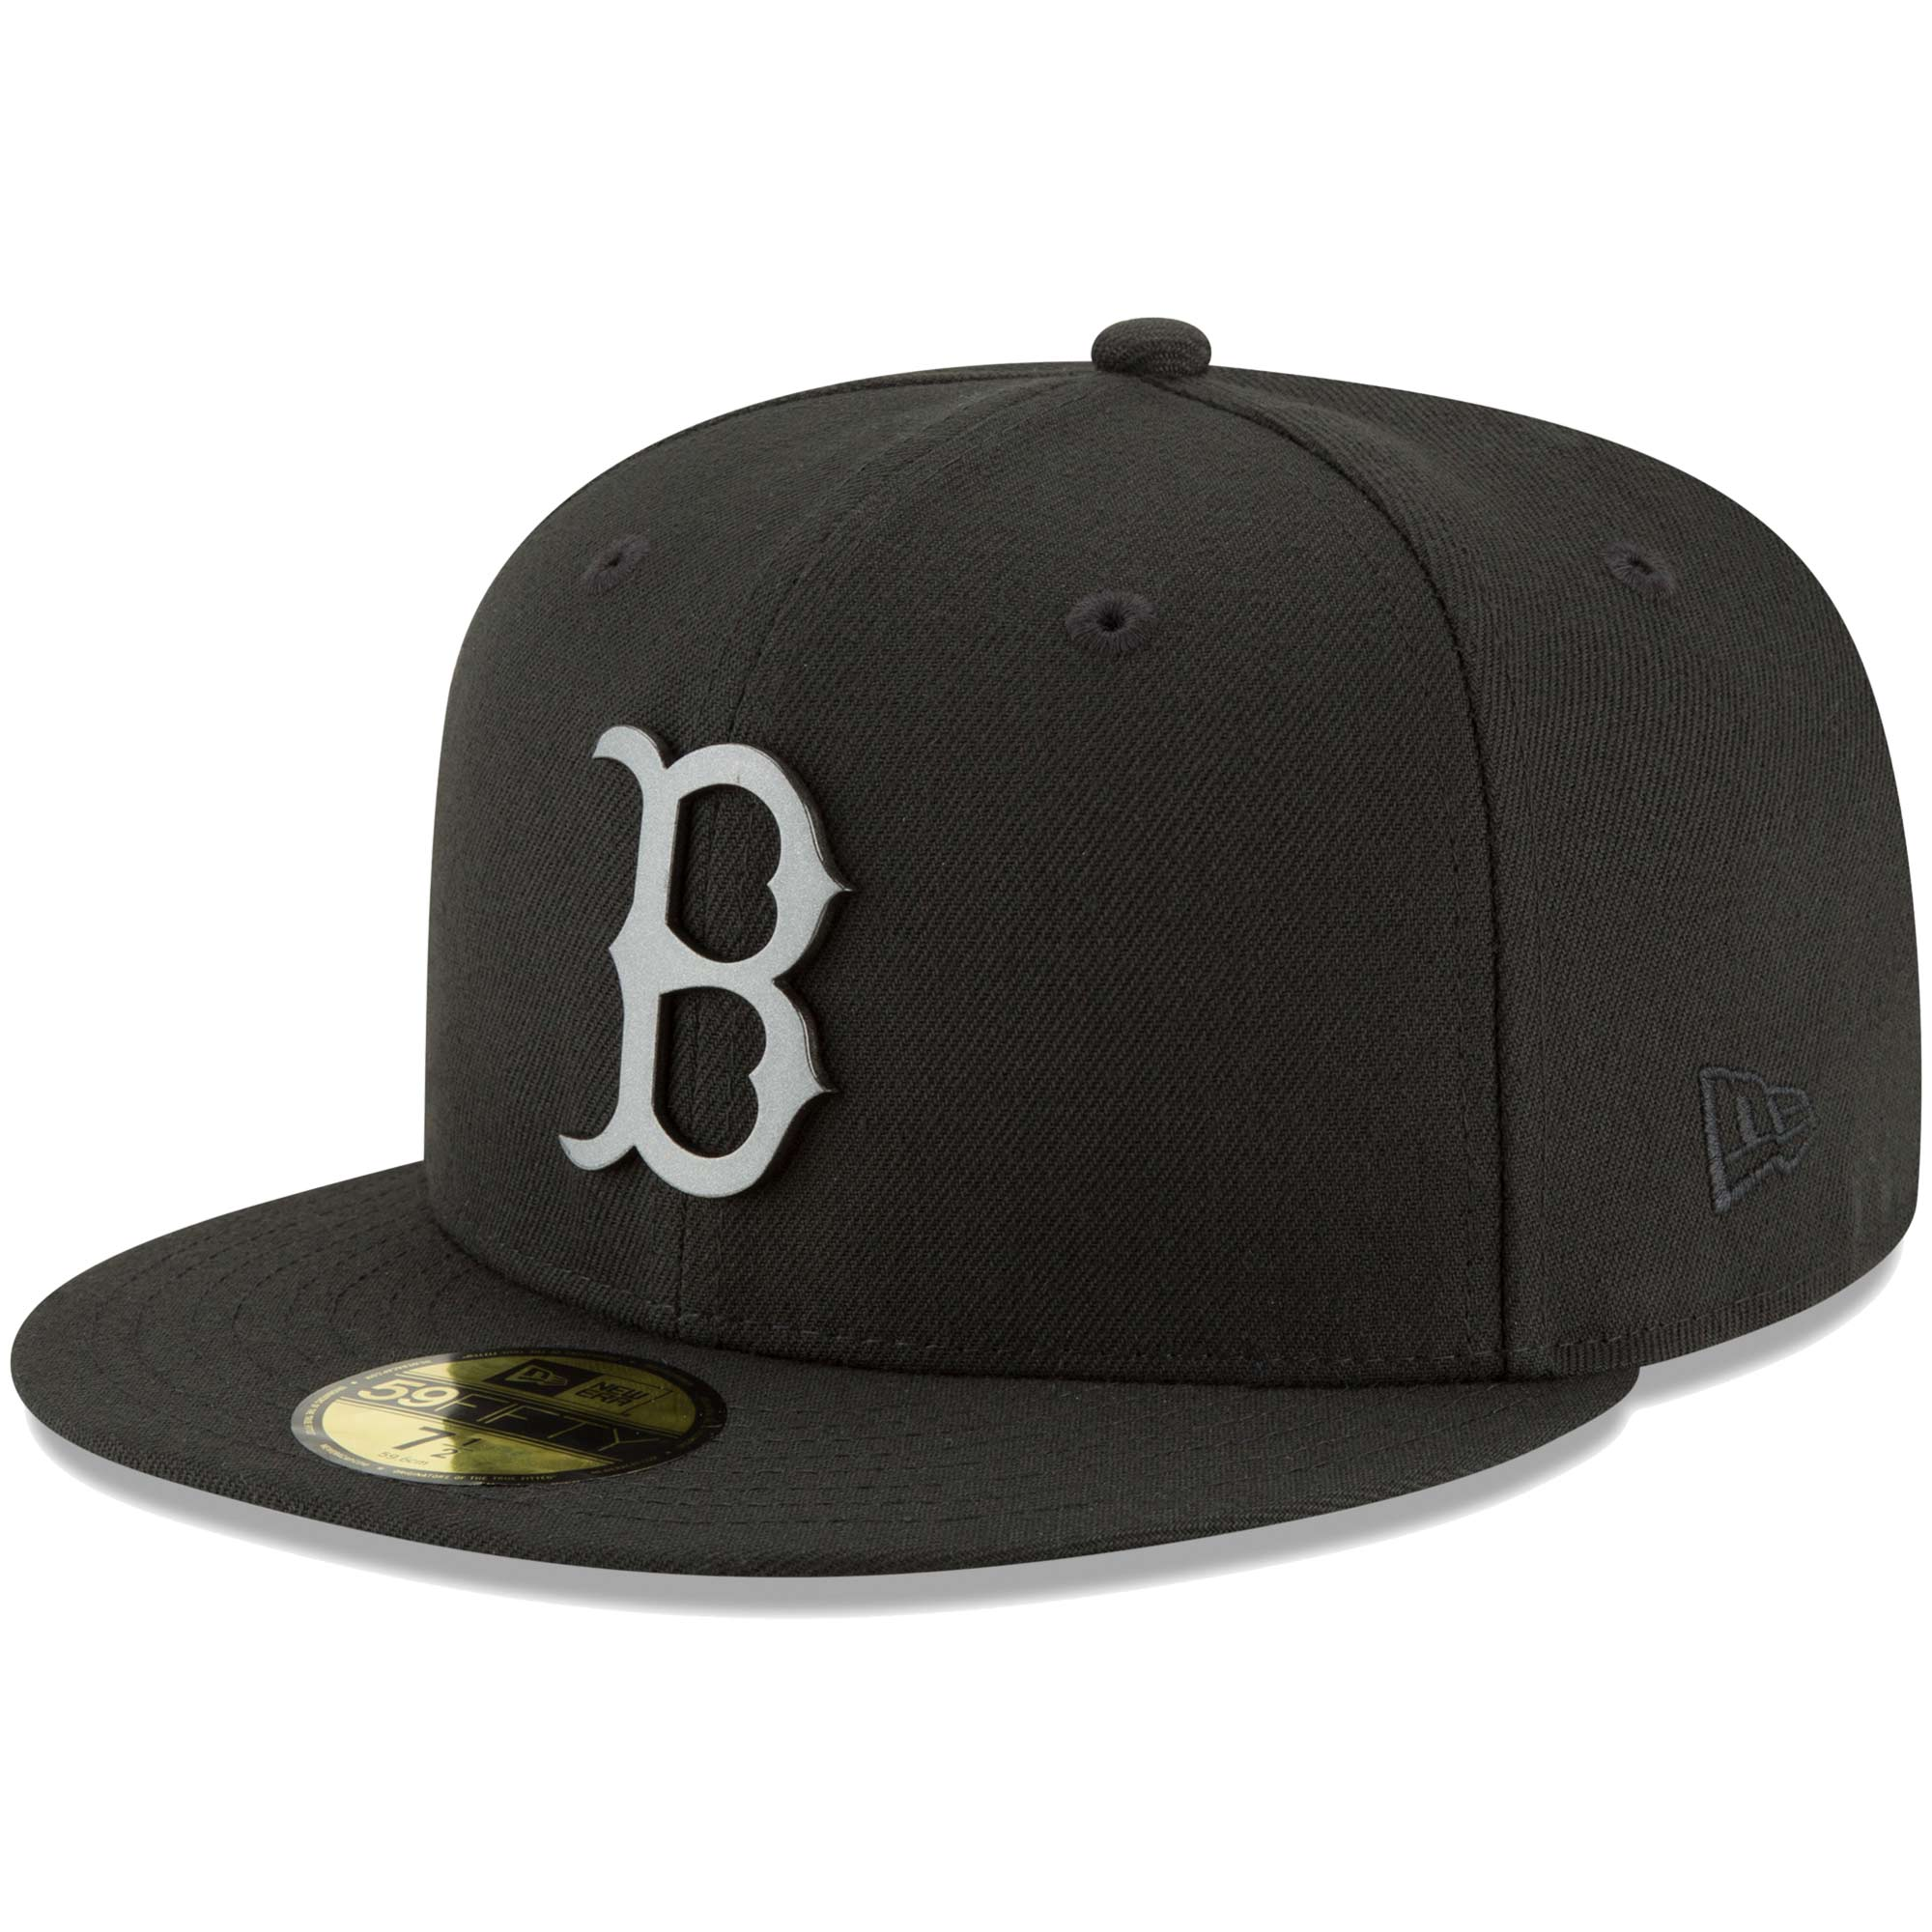 Boston Red Sox New Era Sleeked Finish 59FIFTY Fitted Hat - Black